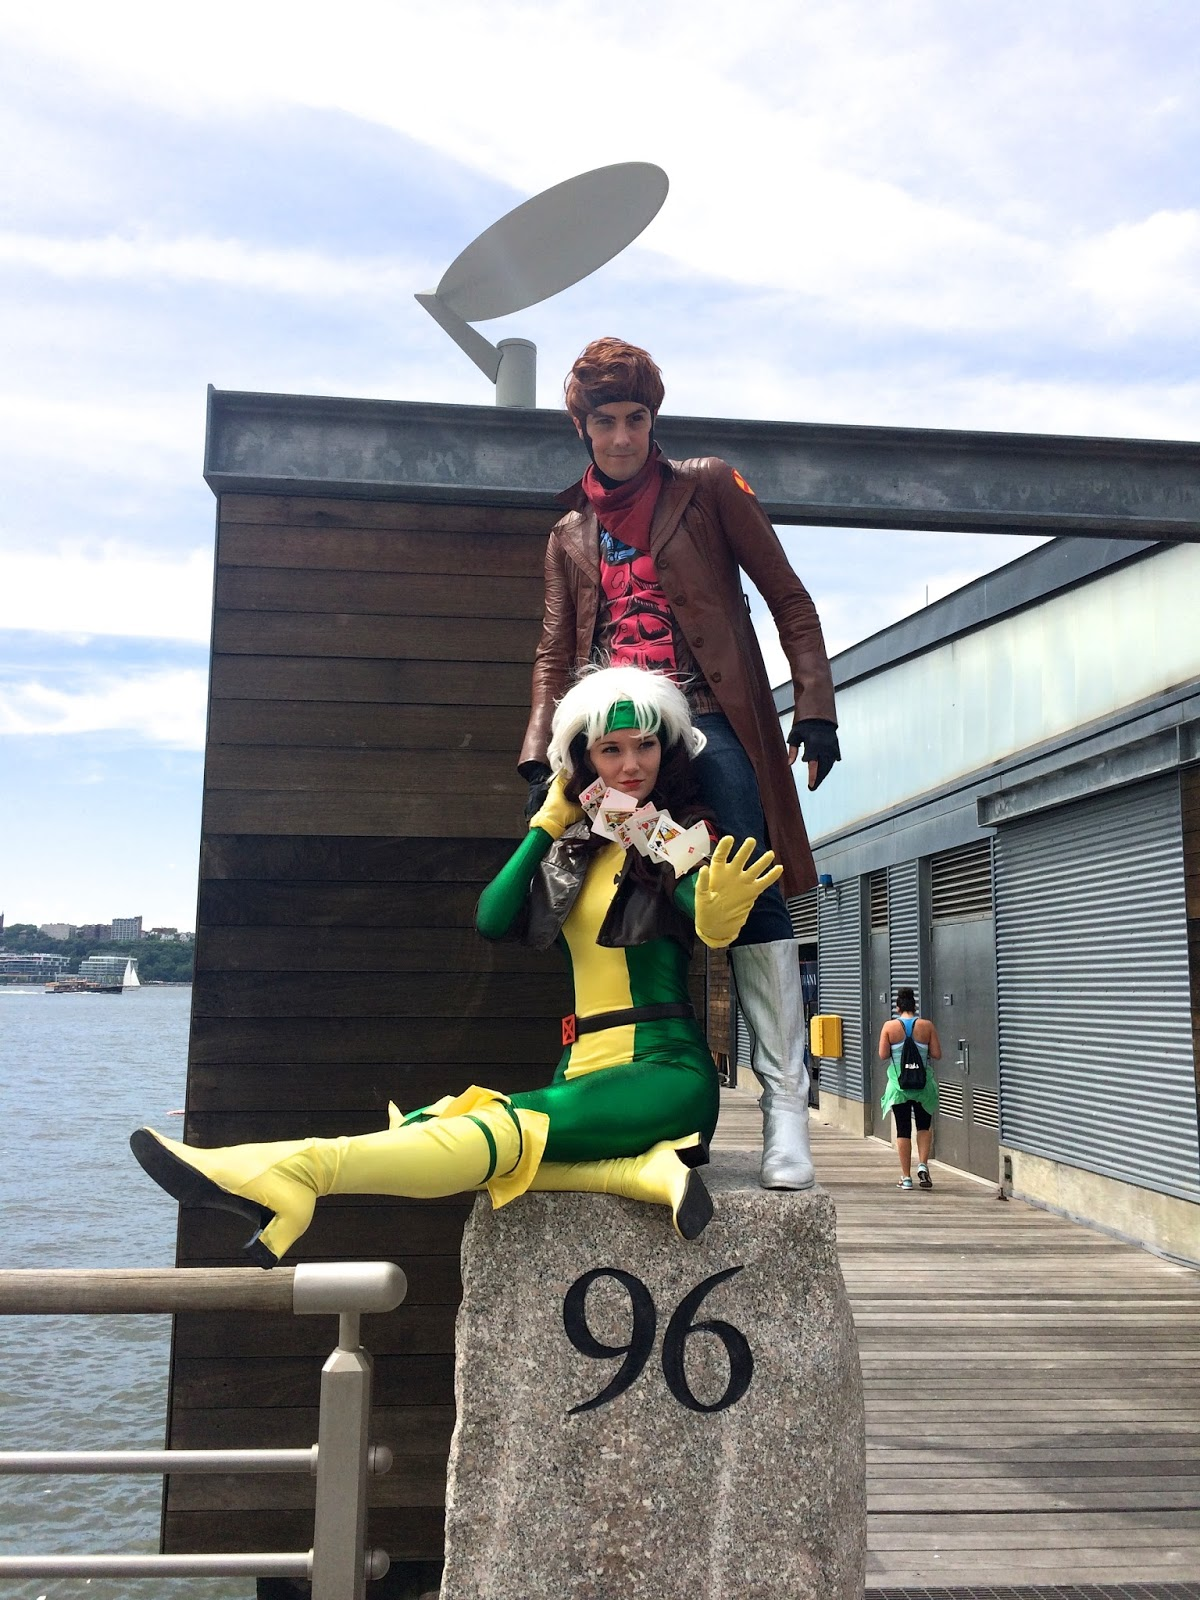 Special Edition NYC X-Men cosplay Rogue Gambit